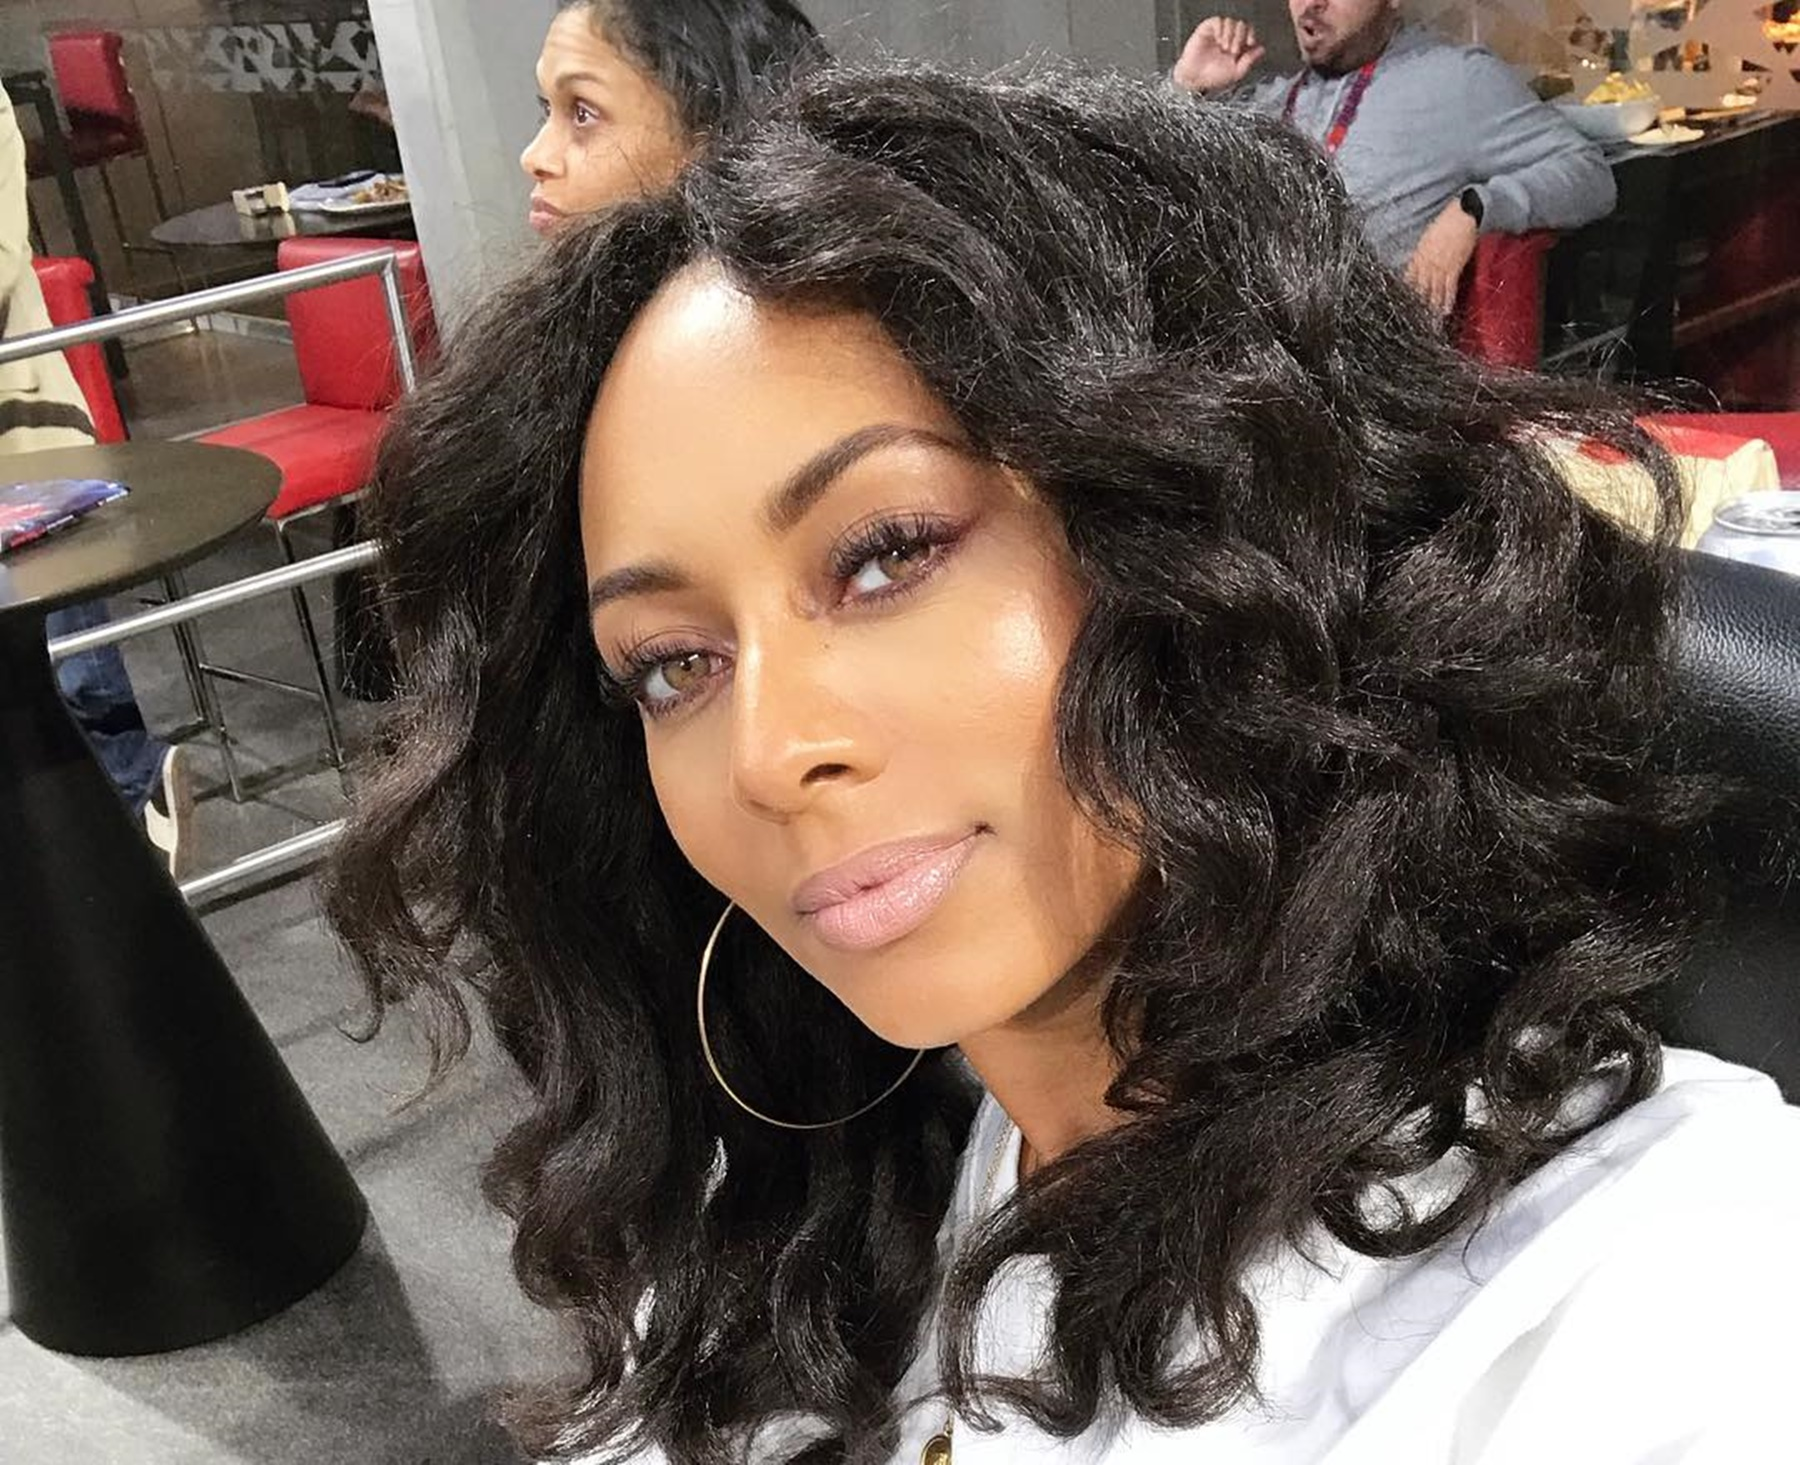 Keri Hilson Goes Make-Up Free In Latest Stunning Pictures — Supporters Believe The Singer Is Gorgeo...